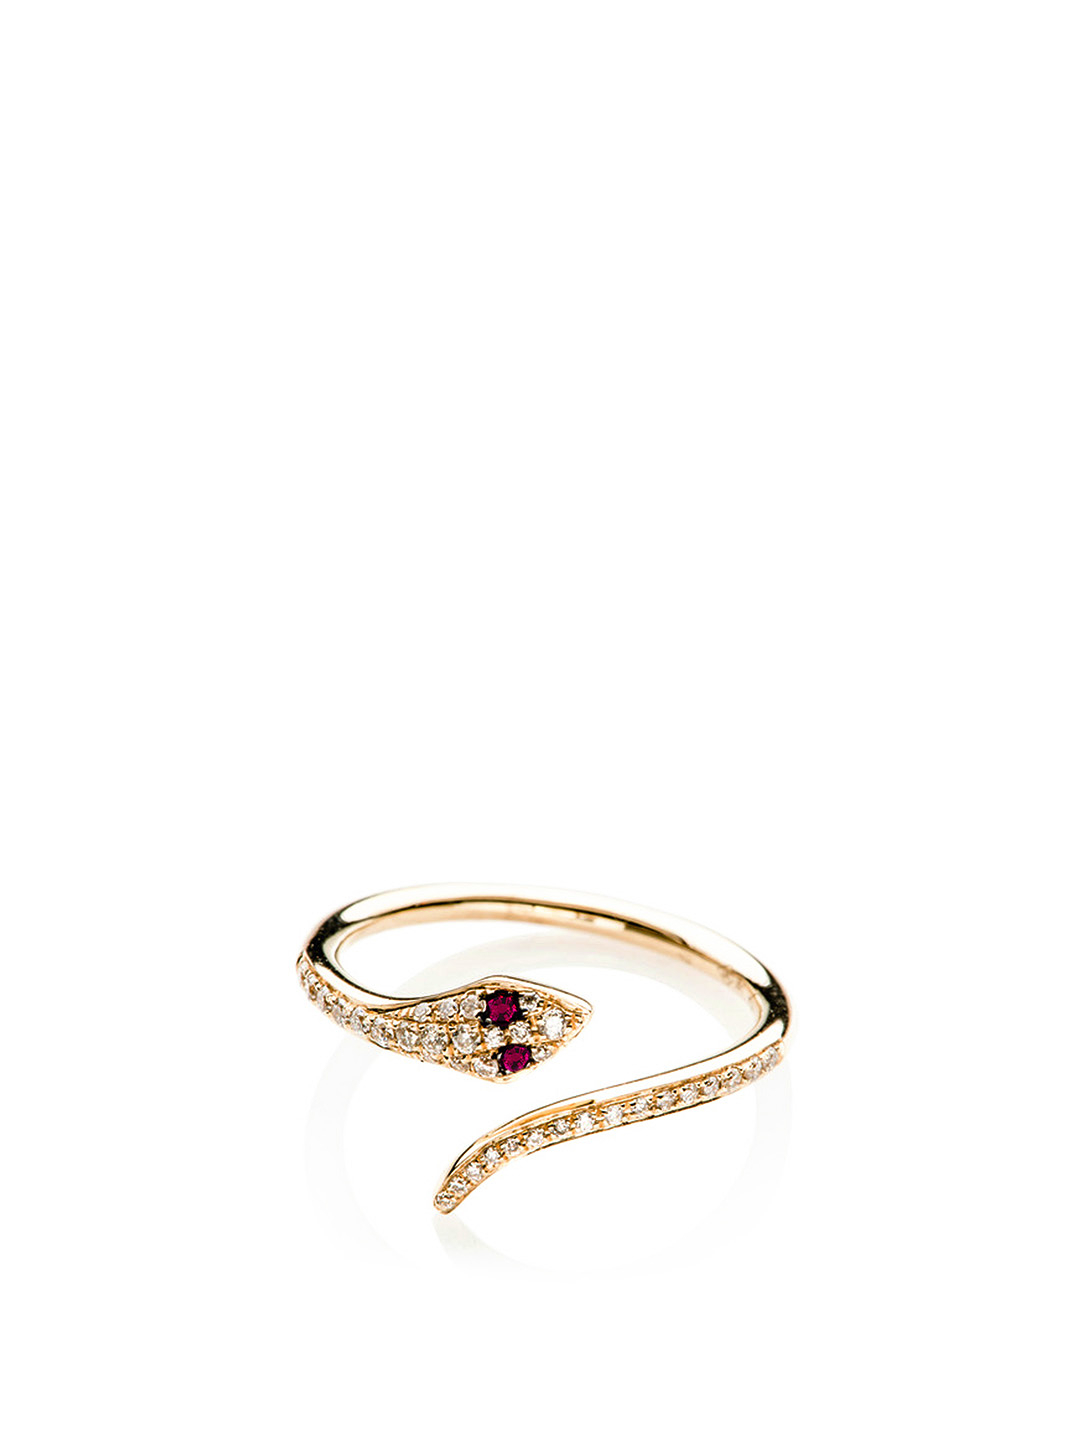 EF COLLECTION Bague en serpent en or 14 ct avec diamants et rubis Femmes Métallique